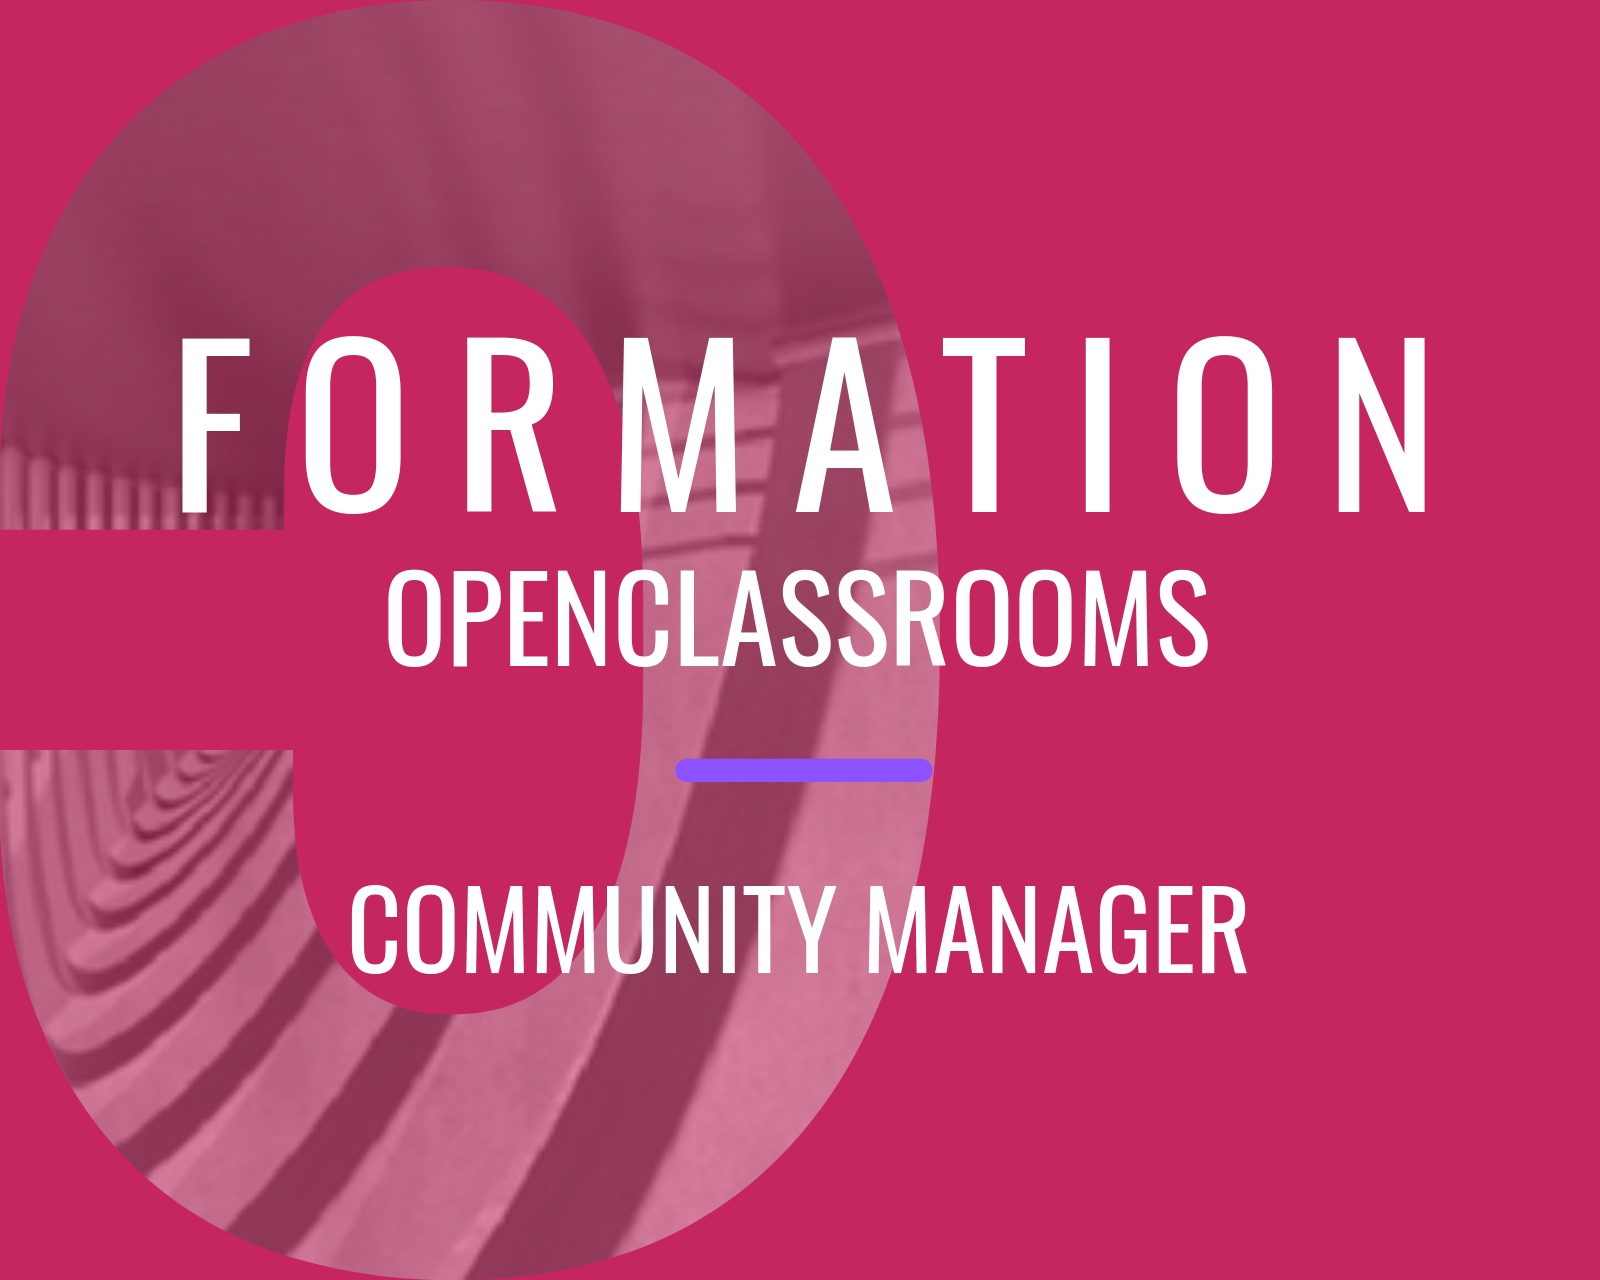 Formation Community Manager avec OpenClassrooms